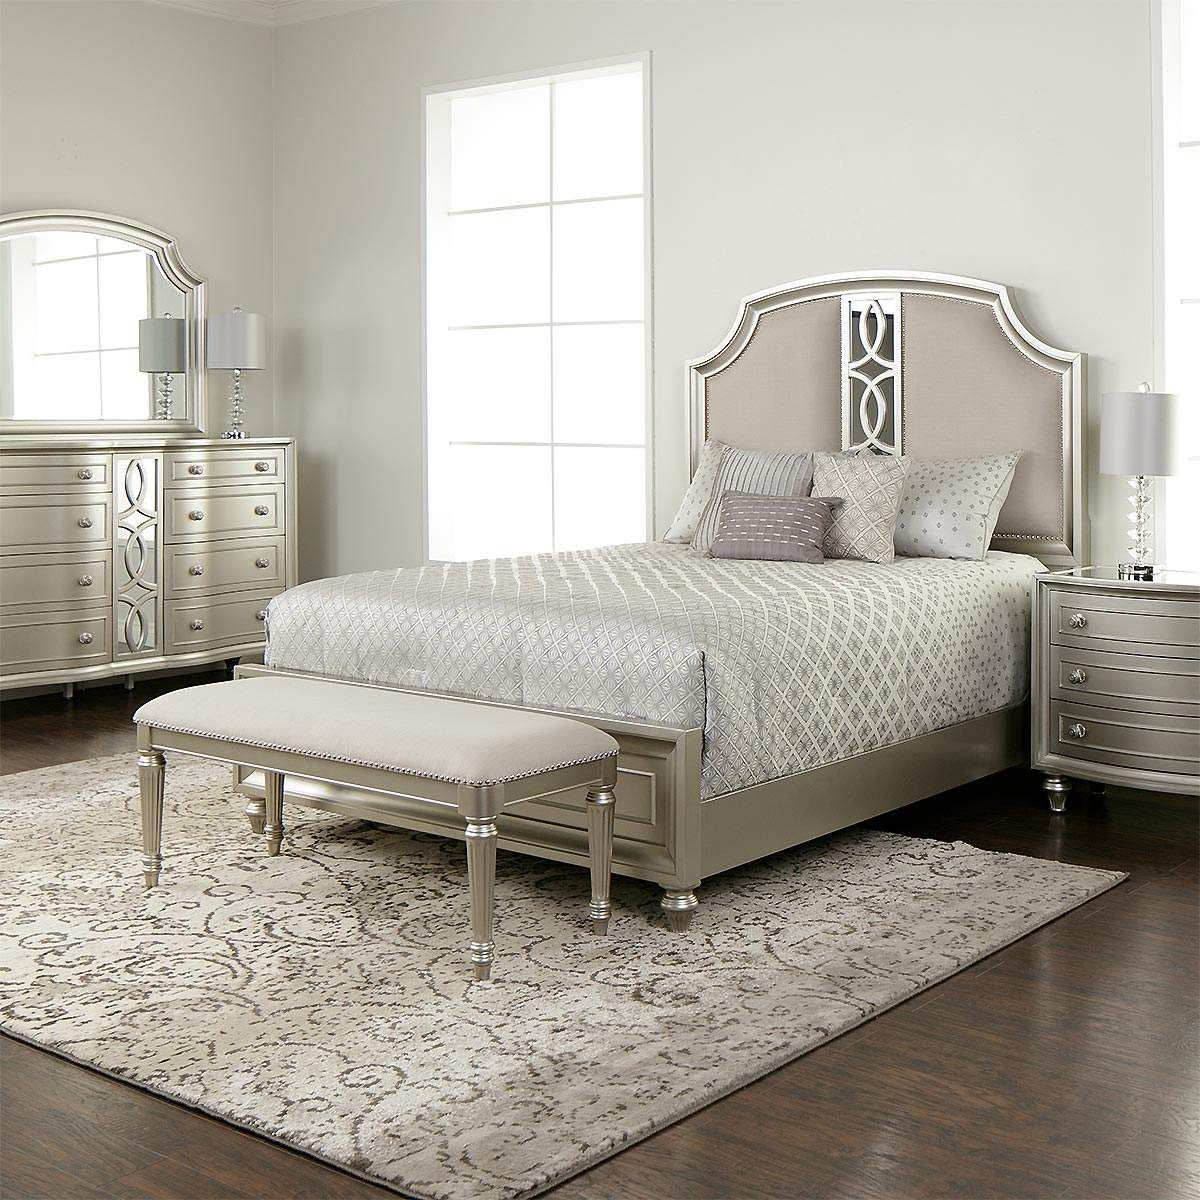 Best Audrey Vintage Bedroom Furniture Bedroom Furniture Sets 400 x 300